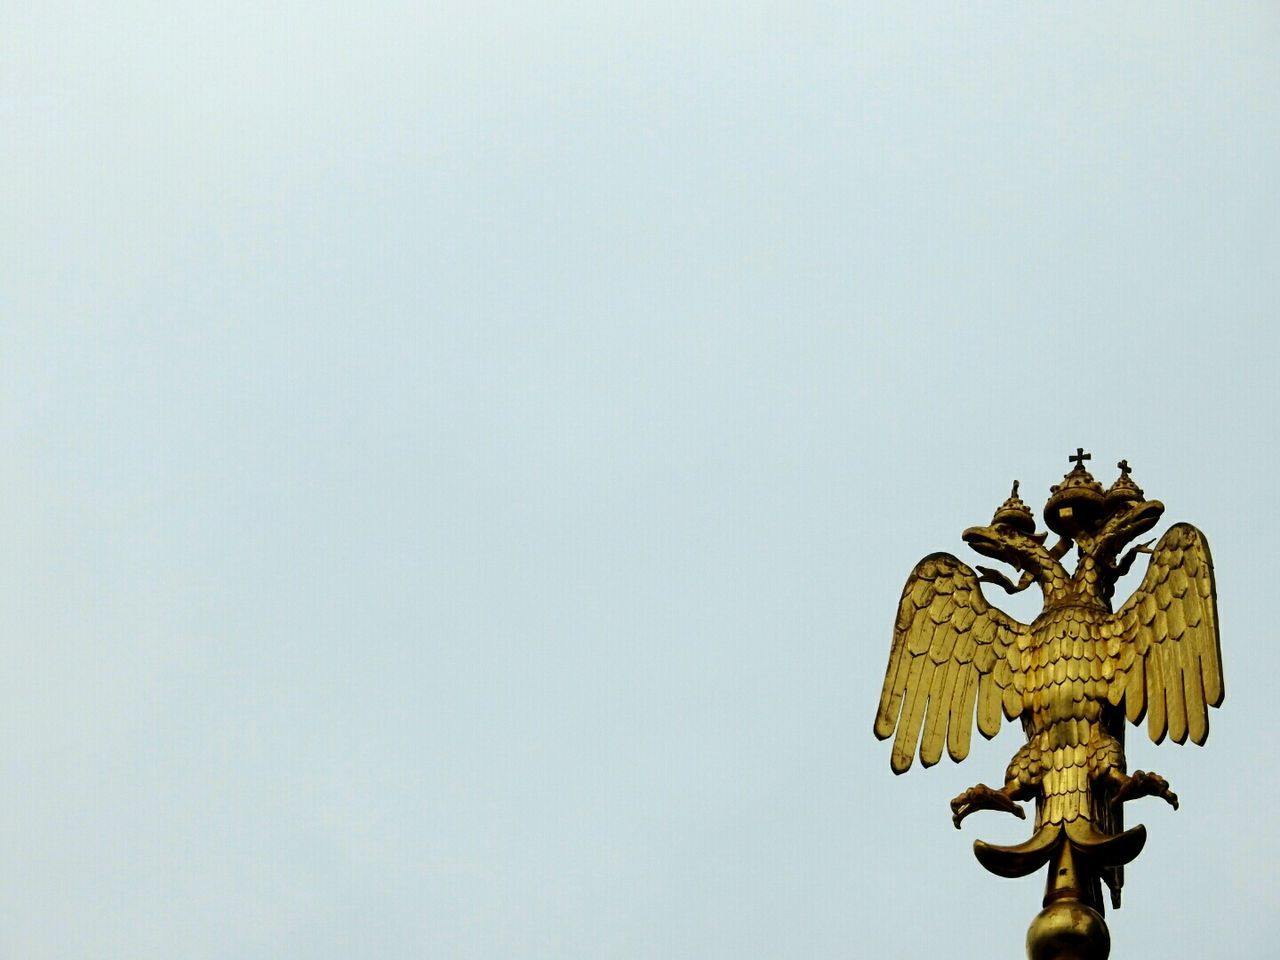 Blazon Two Headed Eagle Spas Na Krovi Sankt-peterburg Russia Golden Walking Around Architecture Streetphotography Fine Art Photography